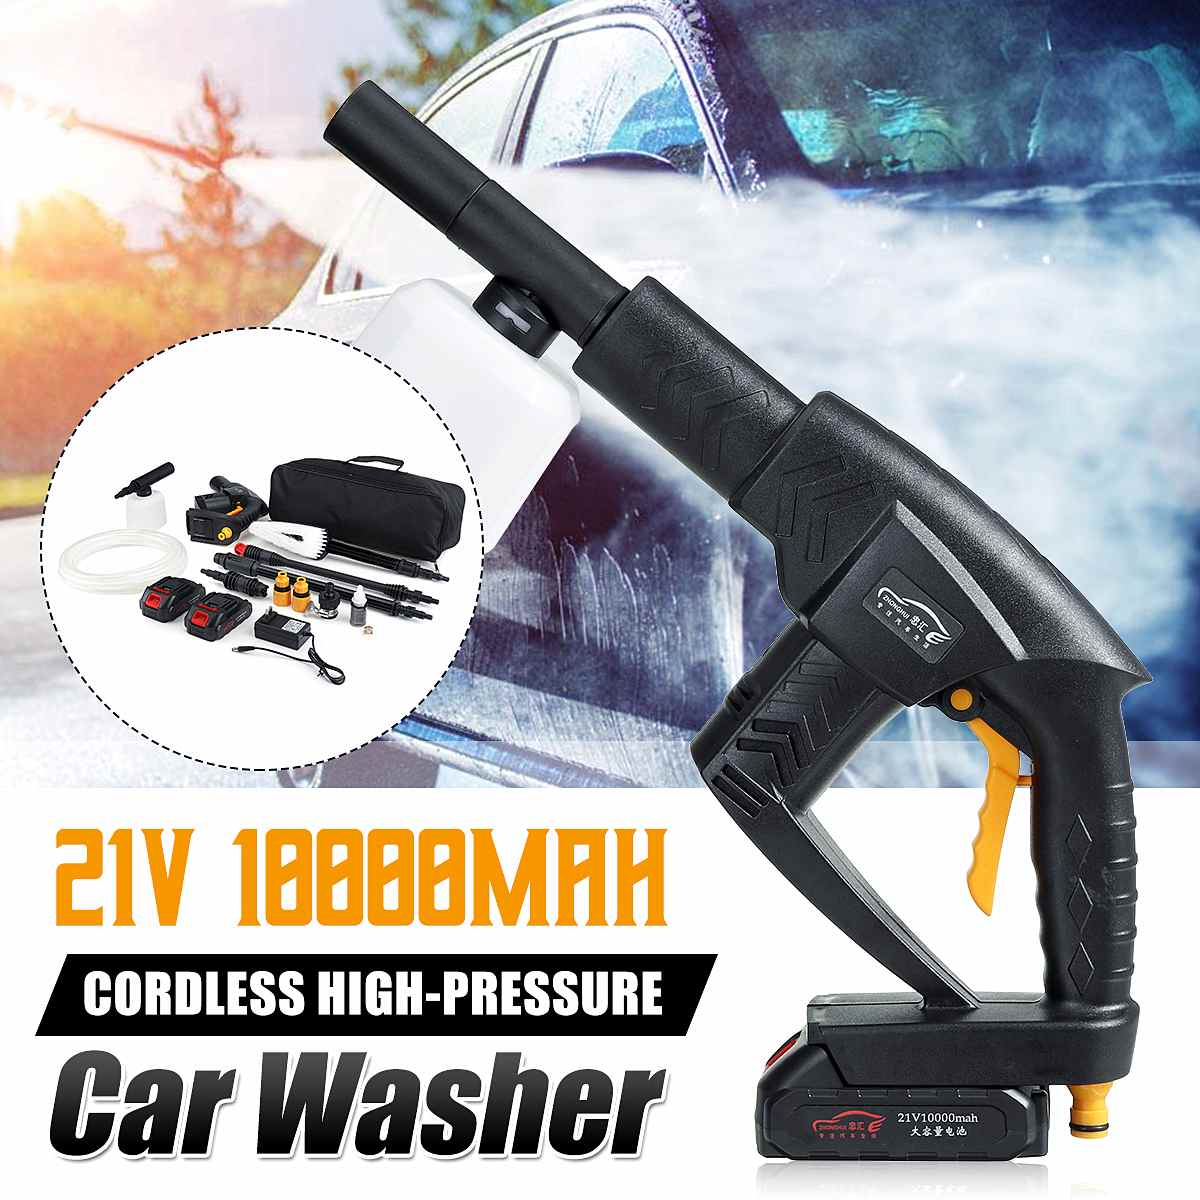 Car Washer 12V Portable Cordless High Pressure Cleaner Lithium Battery Car Washing Machine Auto Garden Home Cleaning Tools